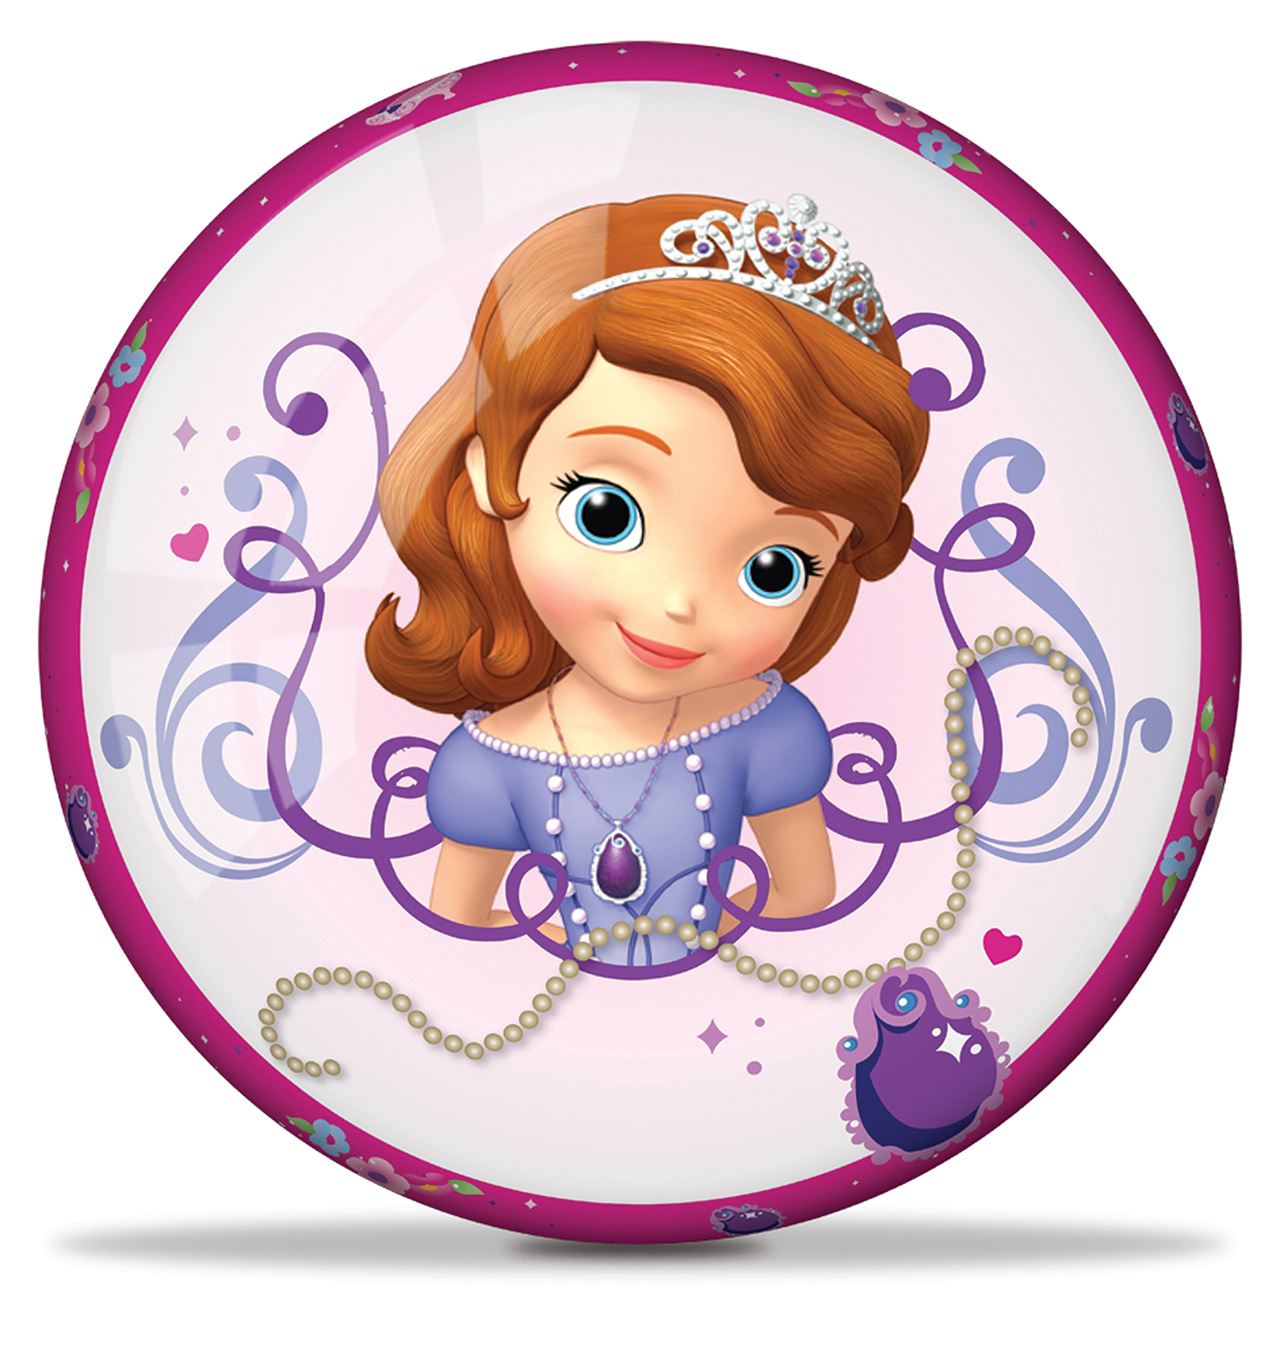 Transparent Cupcake Auto Electrical Wiring Diagram 66559 Re John Deere Harness 23cm Sofia The First Ball